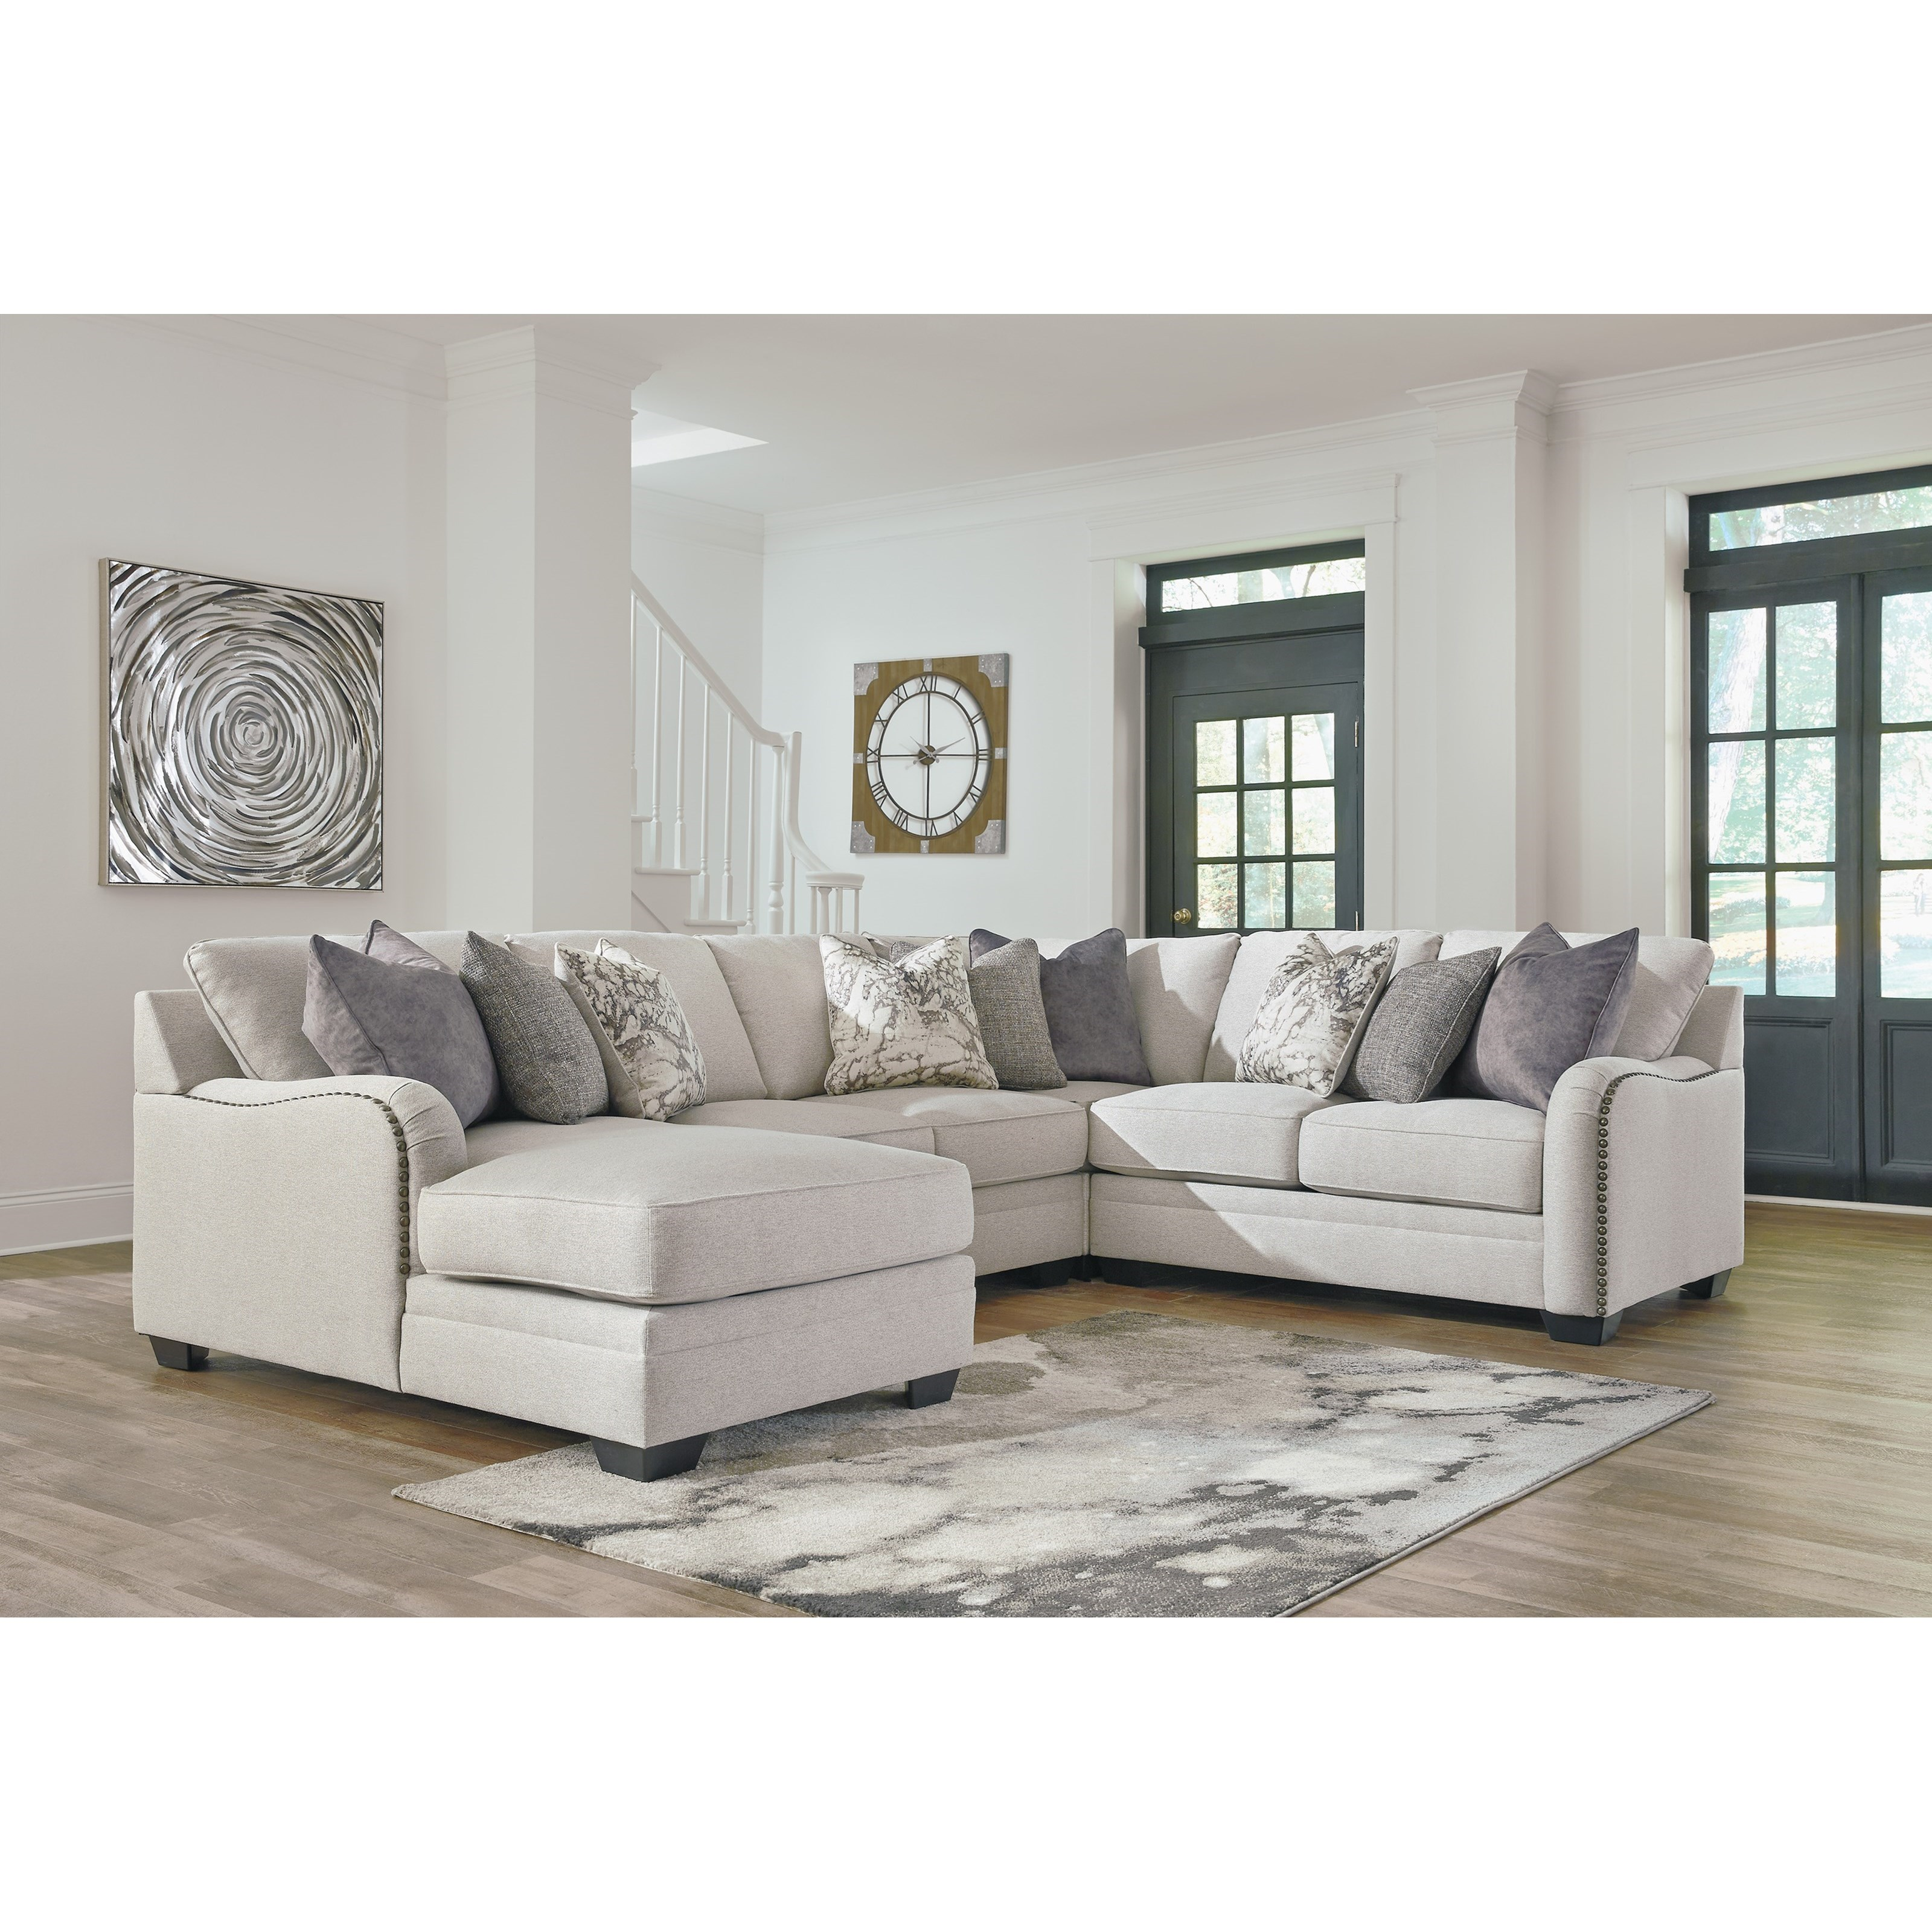 Furniture Chaise Dellara Casual 4 Piece Sectional With Left Chaise By Ashley At Becker Furniture World